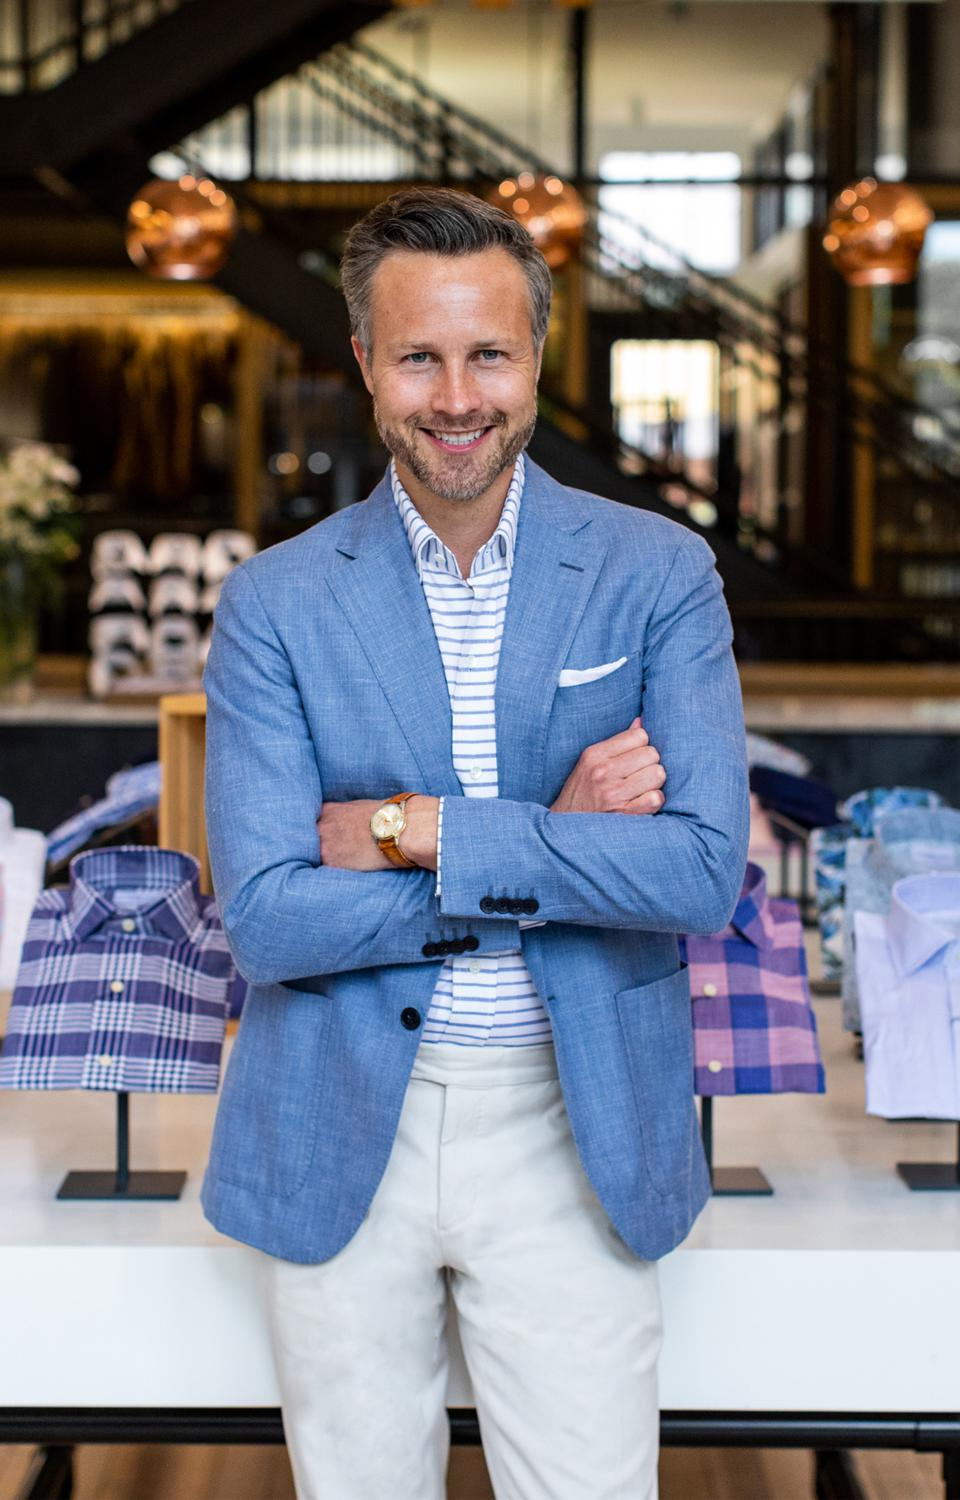 Paul Trible, Co-Founder and CEO of Ledbury